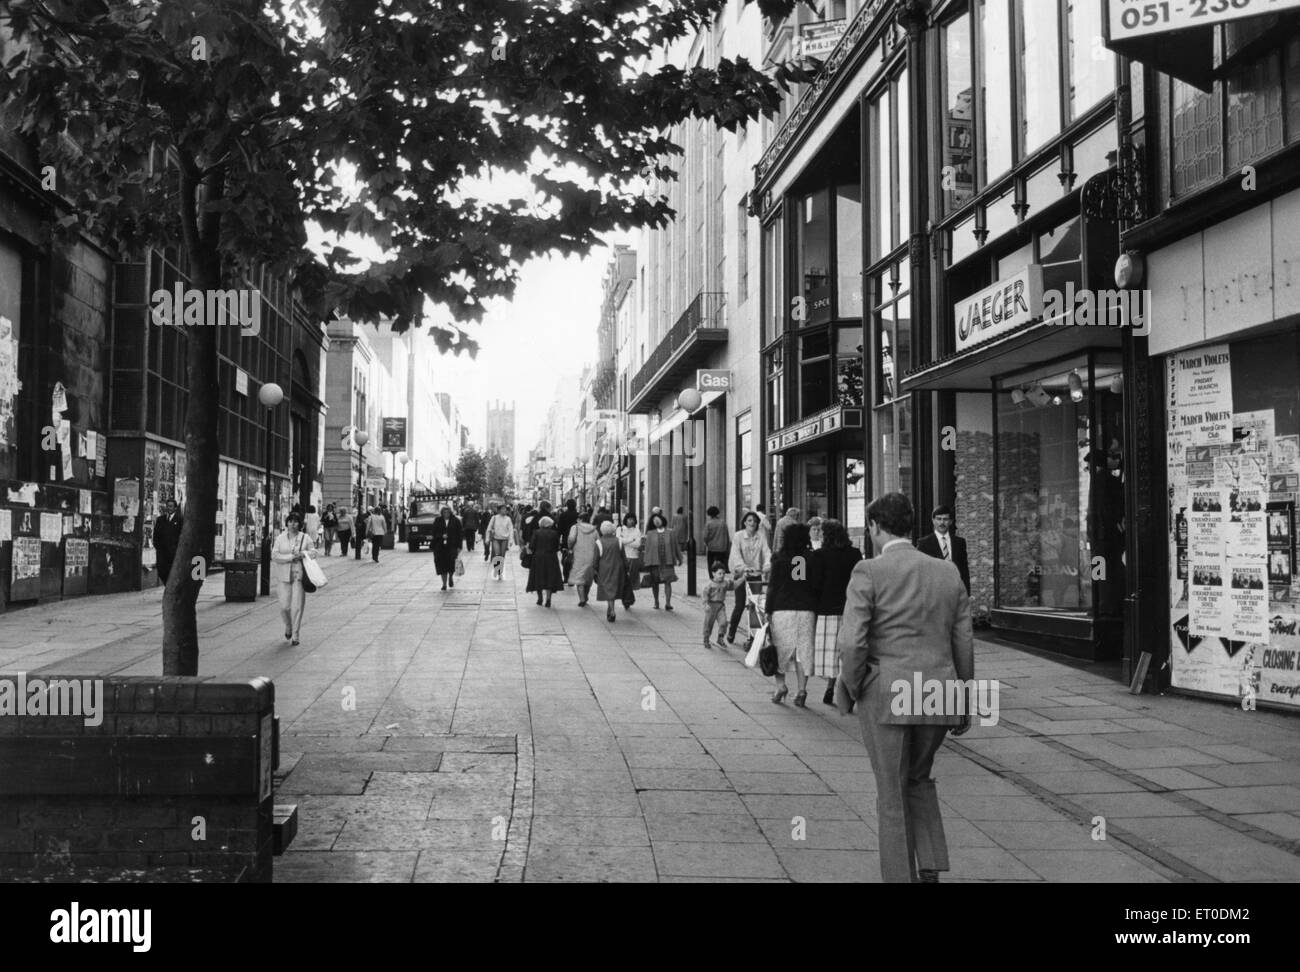 General scene of BoldStreet Liverpool 2nd October 1986 - Stock Image